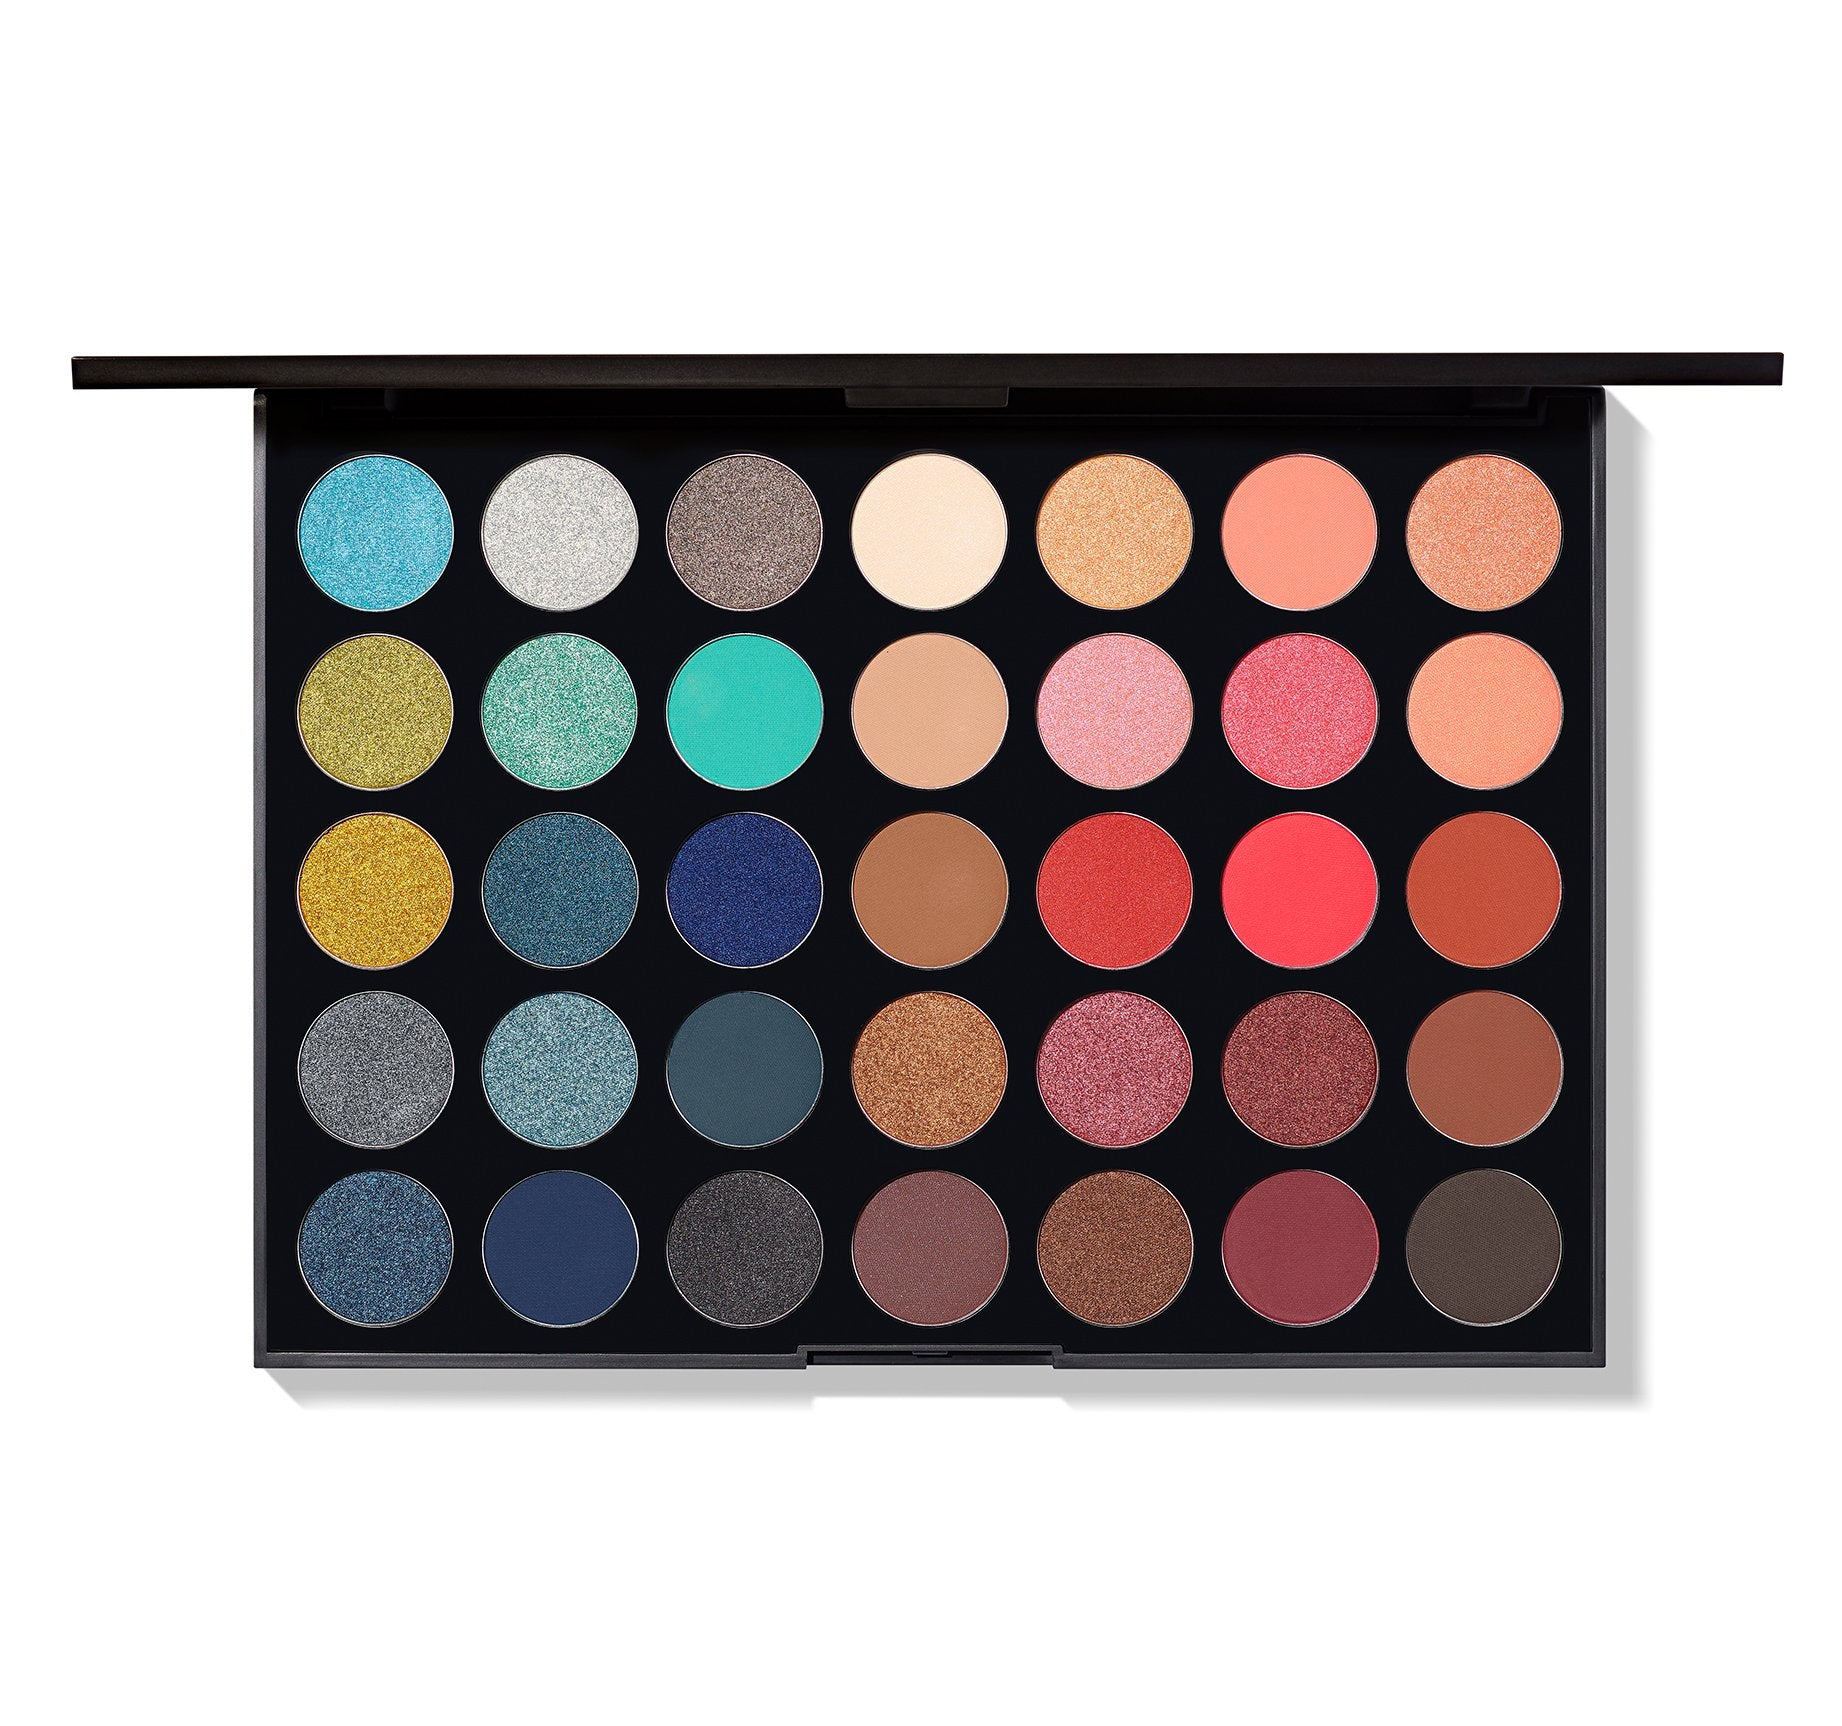 35H HOT SPOT ARTISTRY PALETTE, view larger image